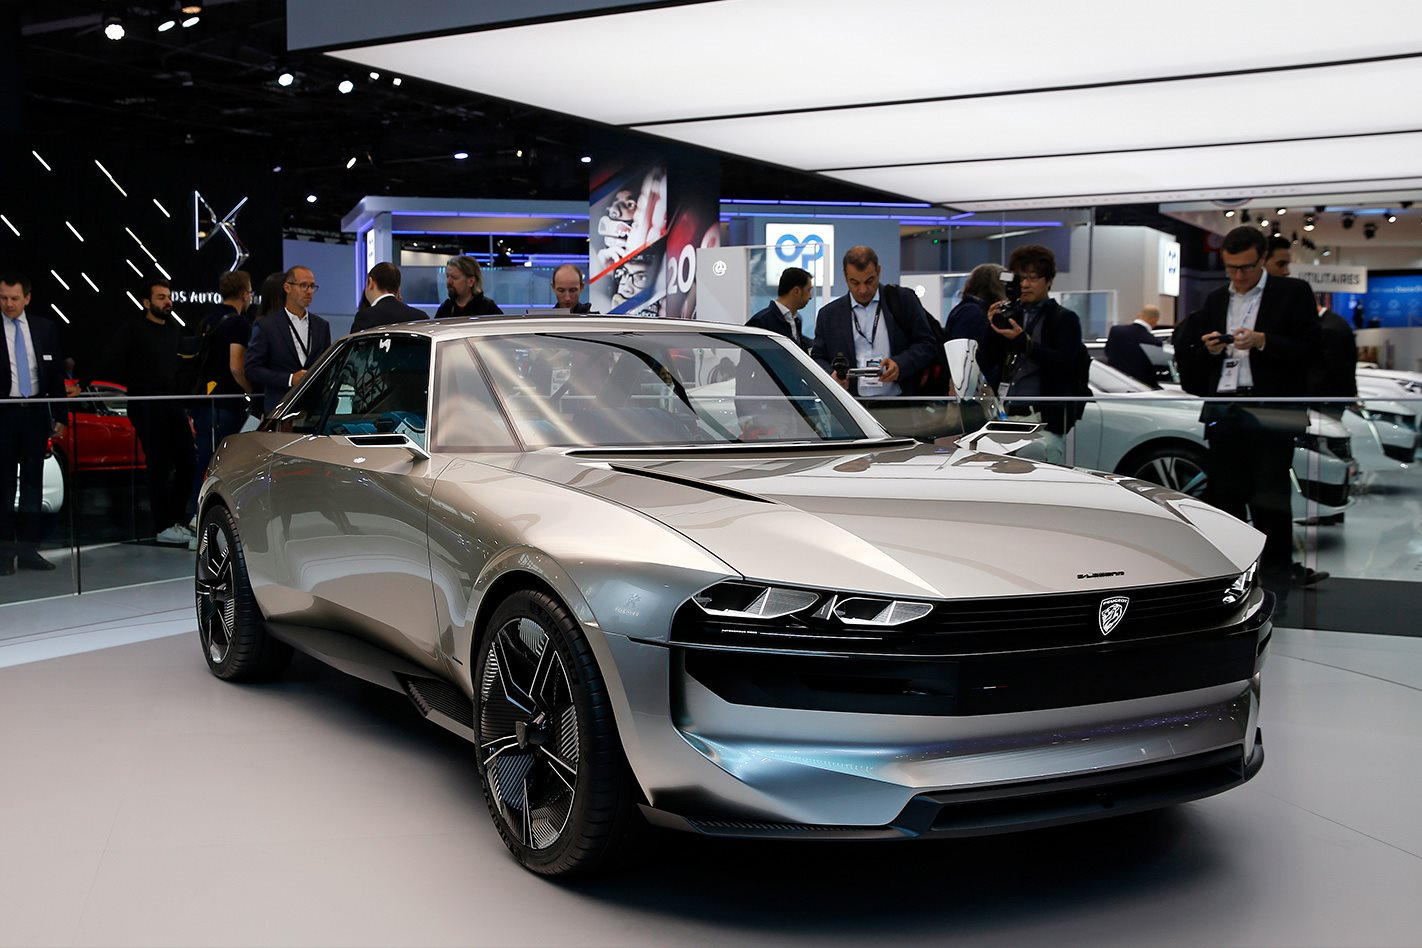 Five of the coolest cars from the 2018 paris motor show for Garage mitsubishi paris